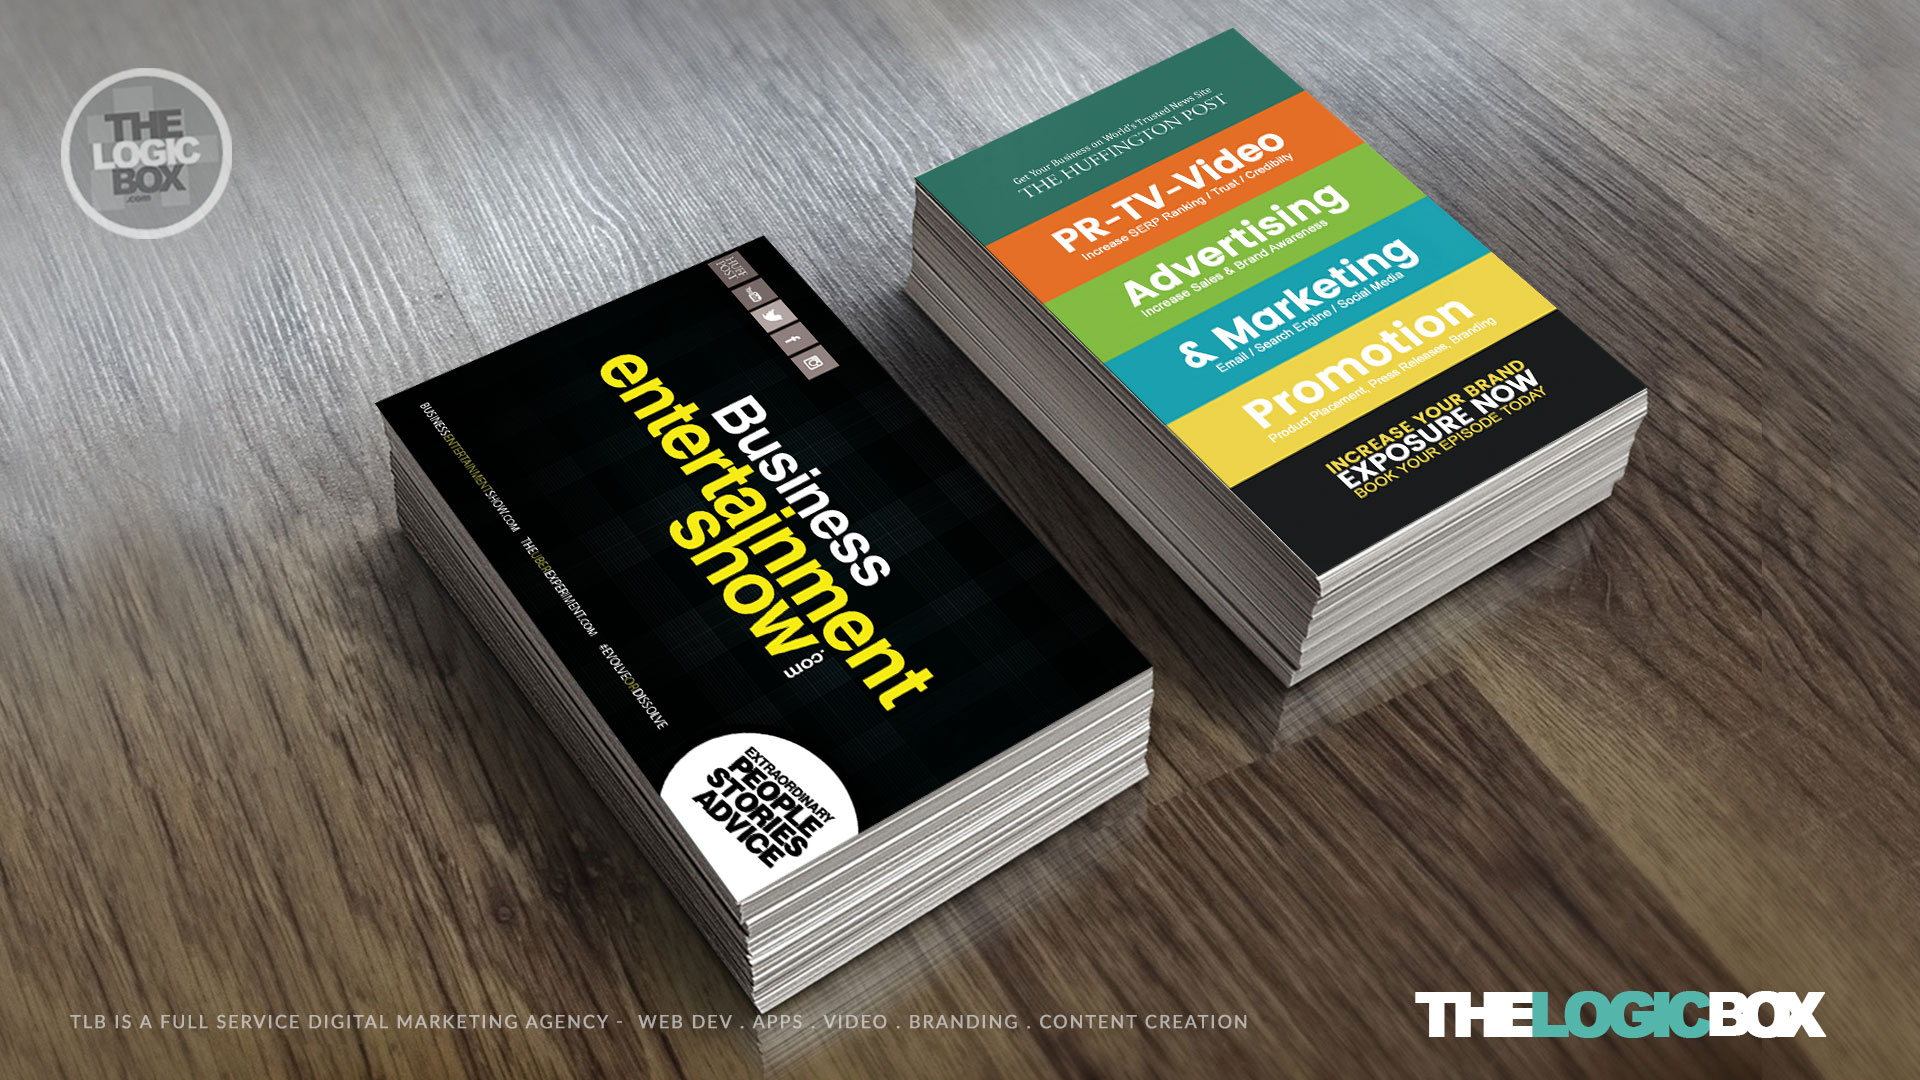 Business-Card-the-logic-box-agency-5-business-entertainment-show